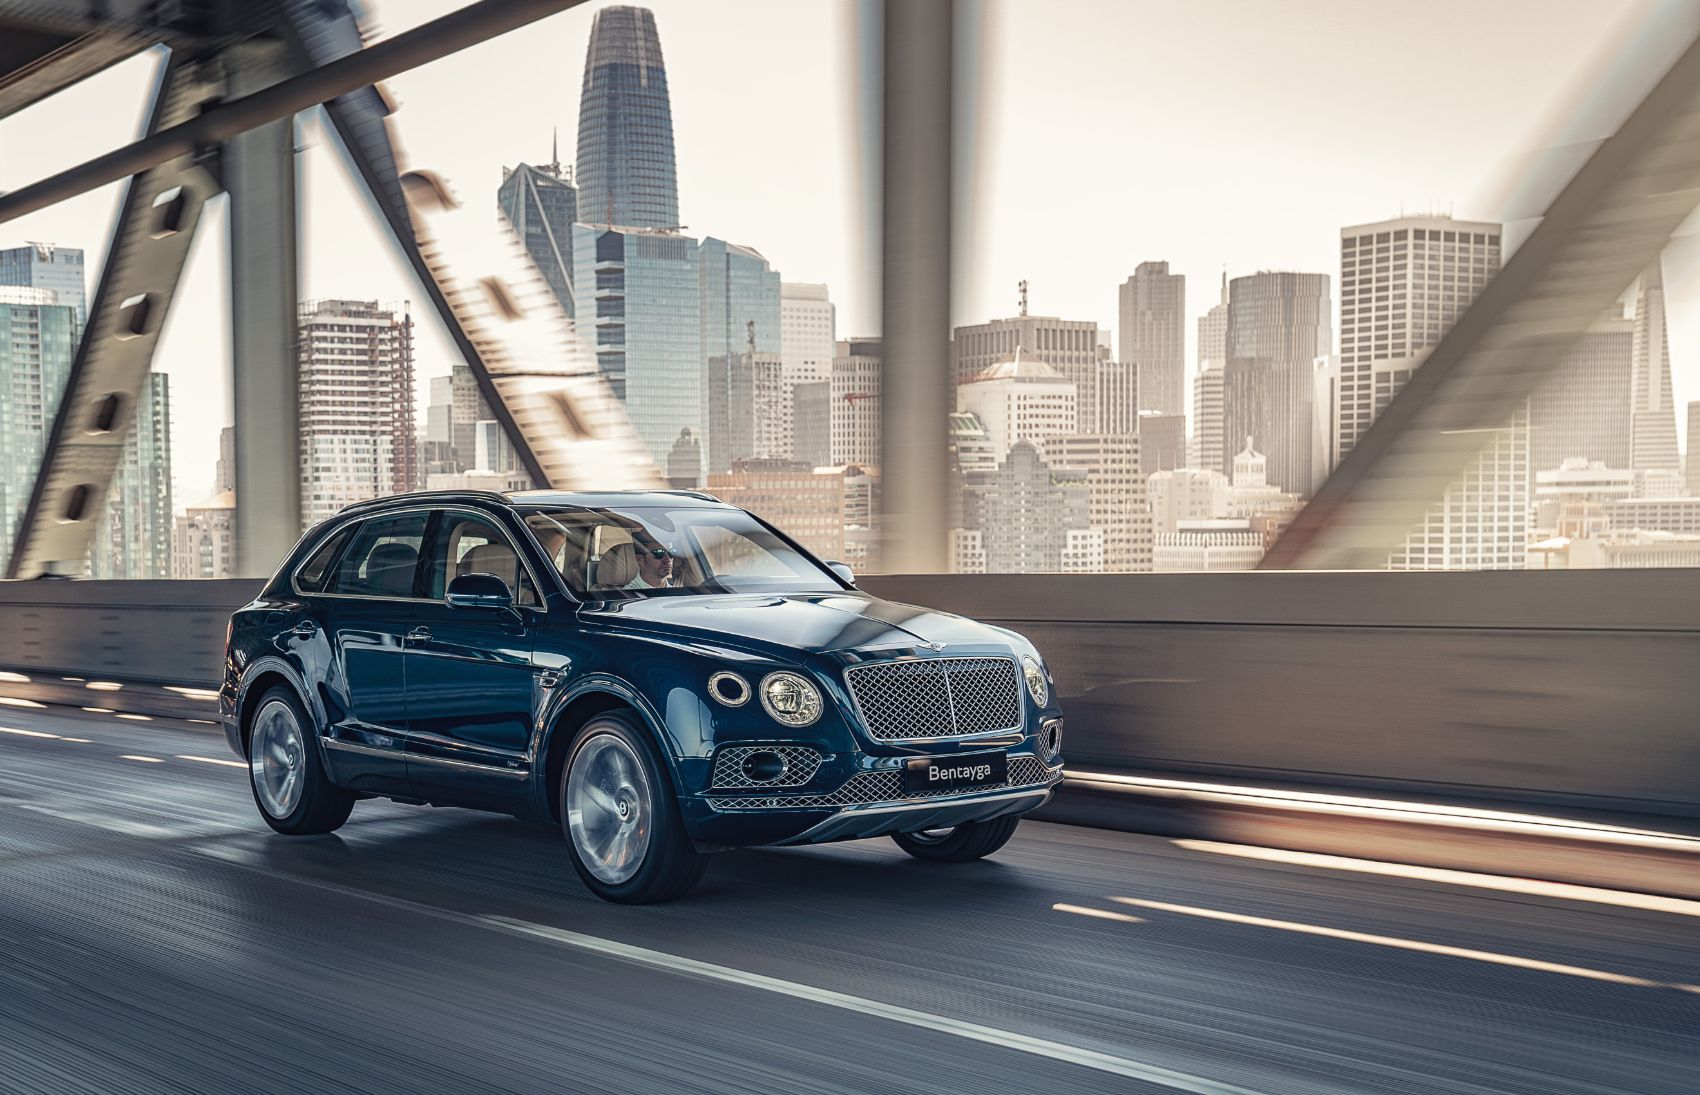 Bentley Bentayga Hybrid: When Eco Goes Posh